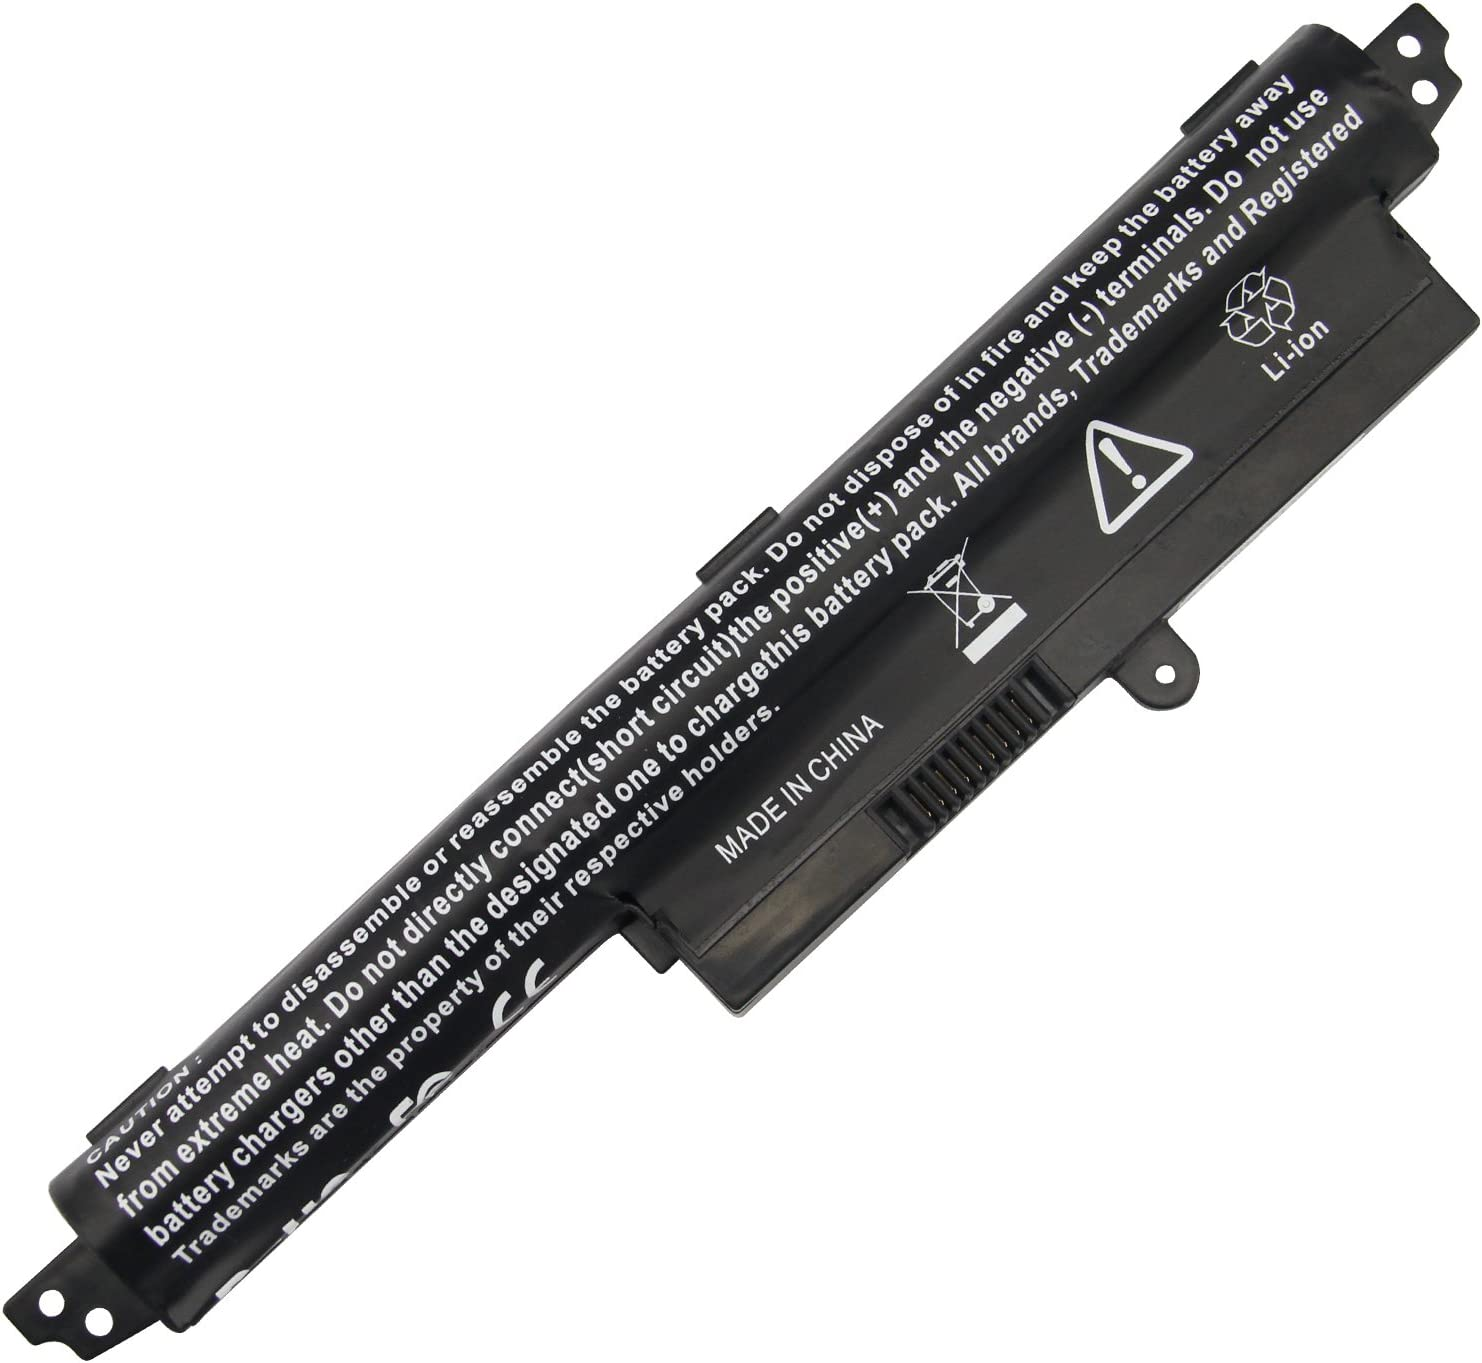 "AC Doctor INC Laptop Battery for ASUS VivoBook X200CA F200CA 11.6"" Series A31N1302 A31LMH2 A31LM9H 1566-6868 0B110-00240100E, 2200mAh/11.1V/3-Cells"